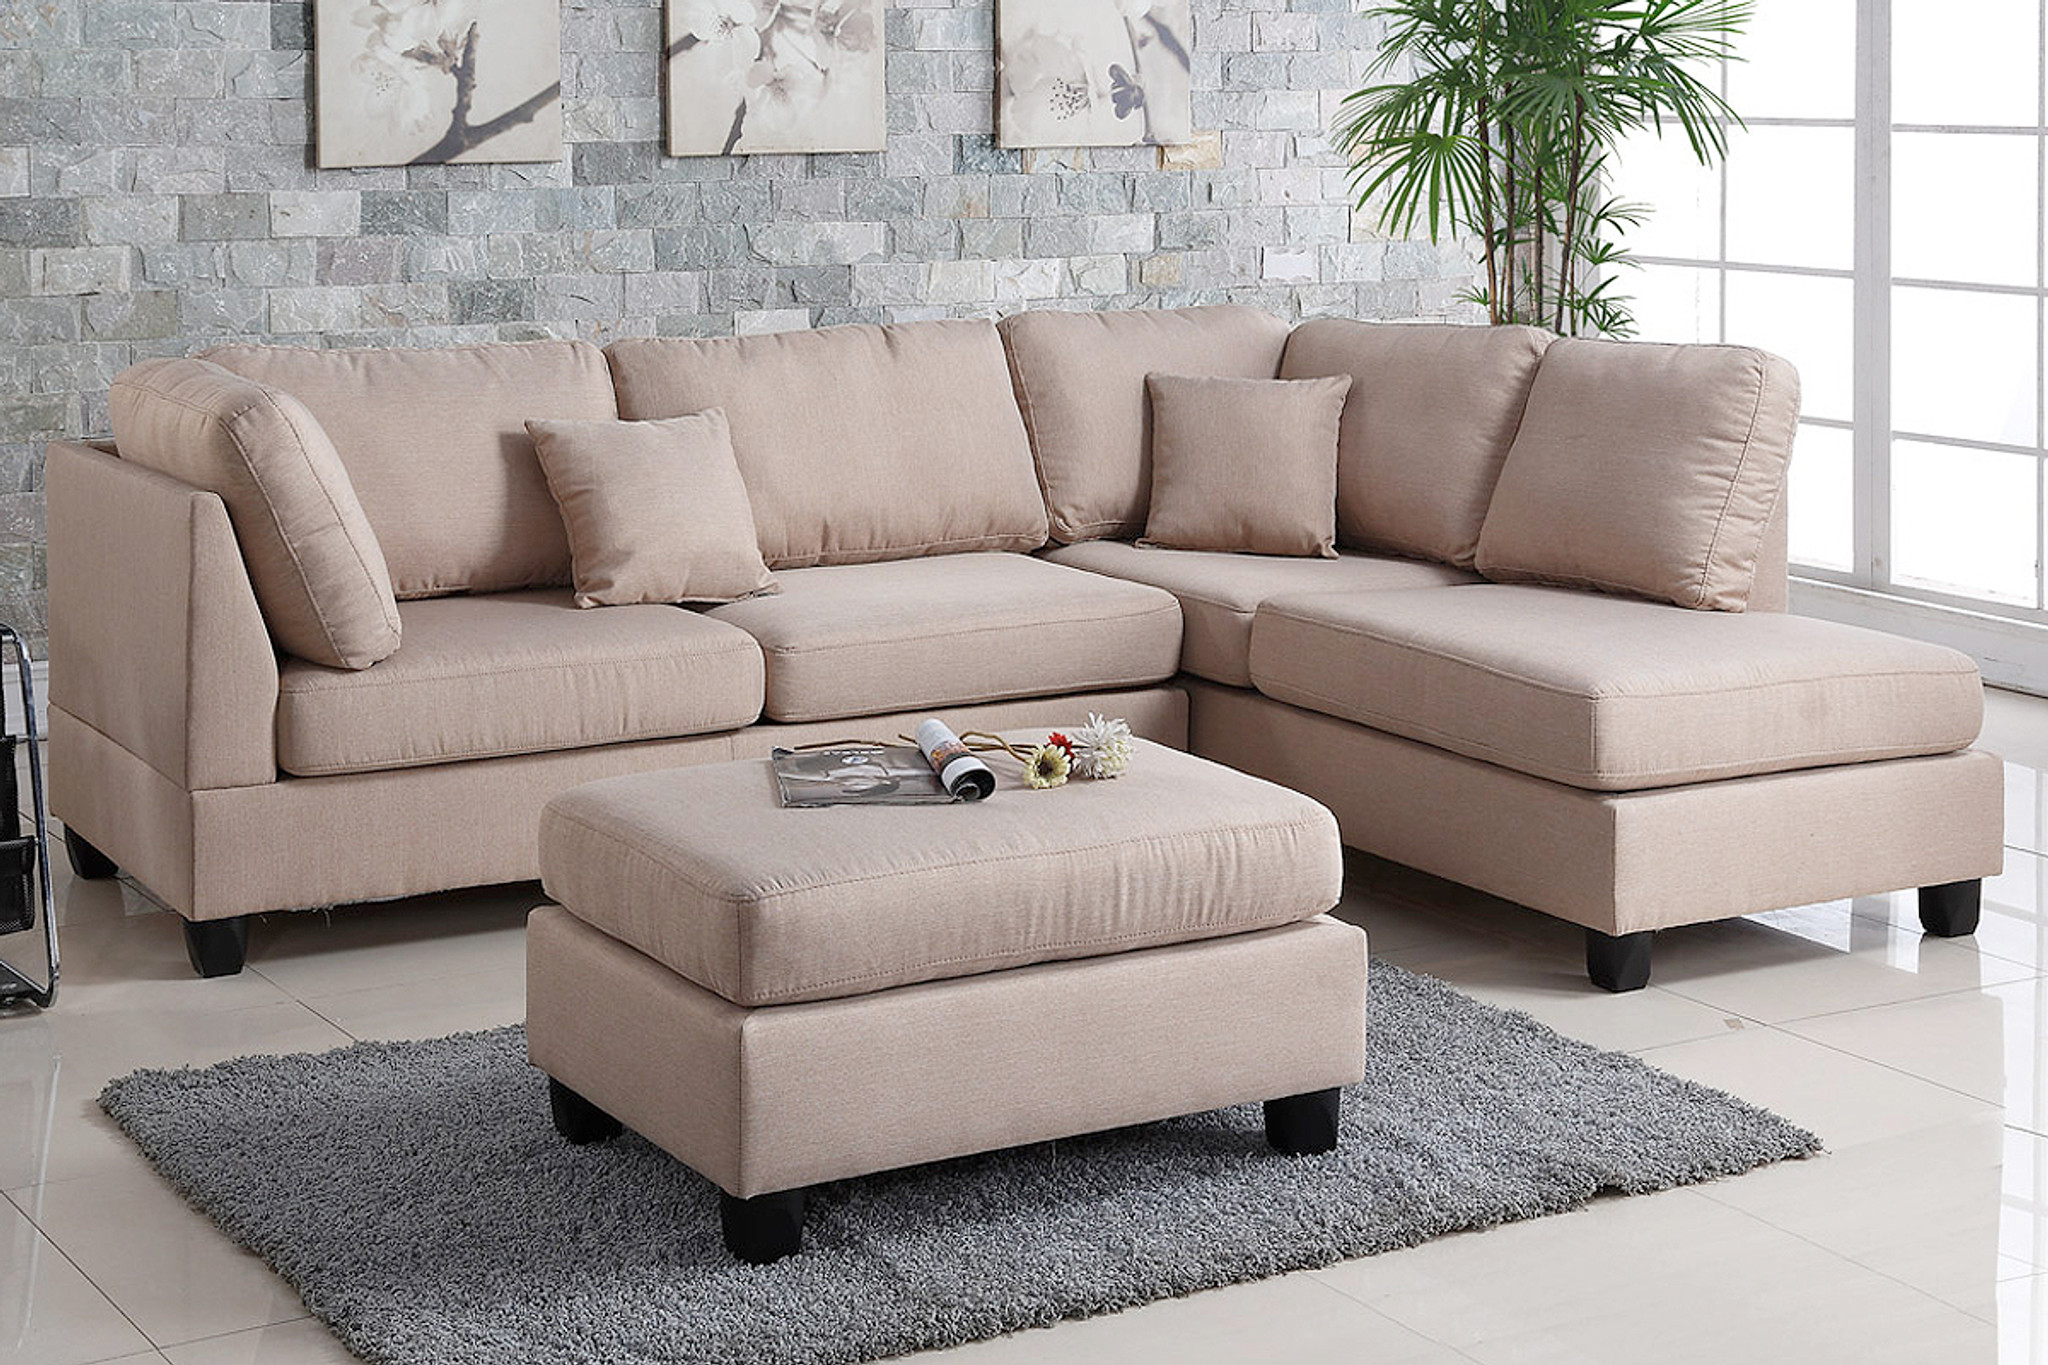 3PC LANA SECTIONAL WITH OTTOMAN IN SAND LINEN